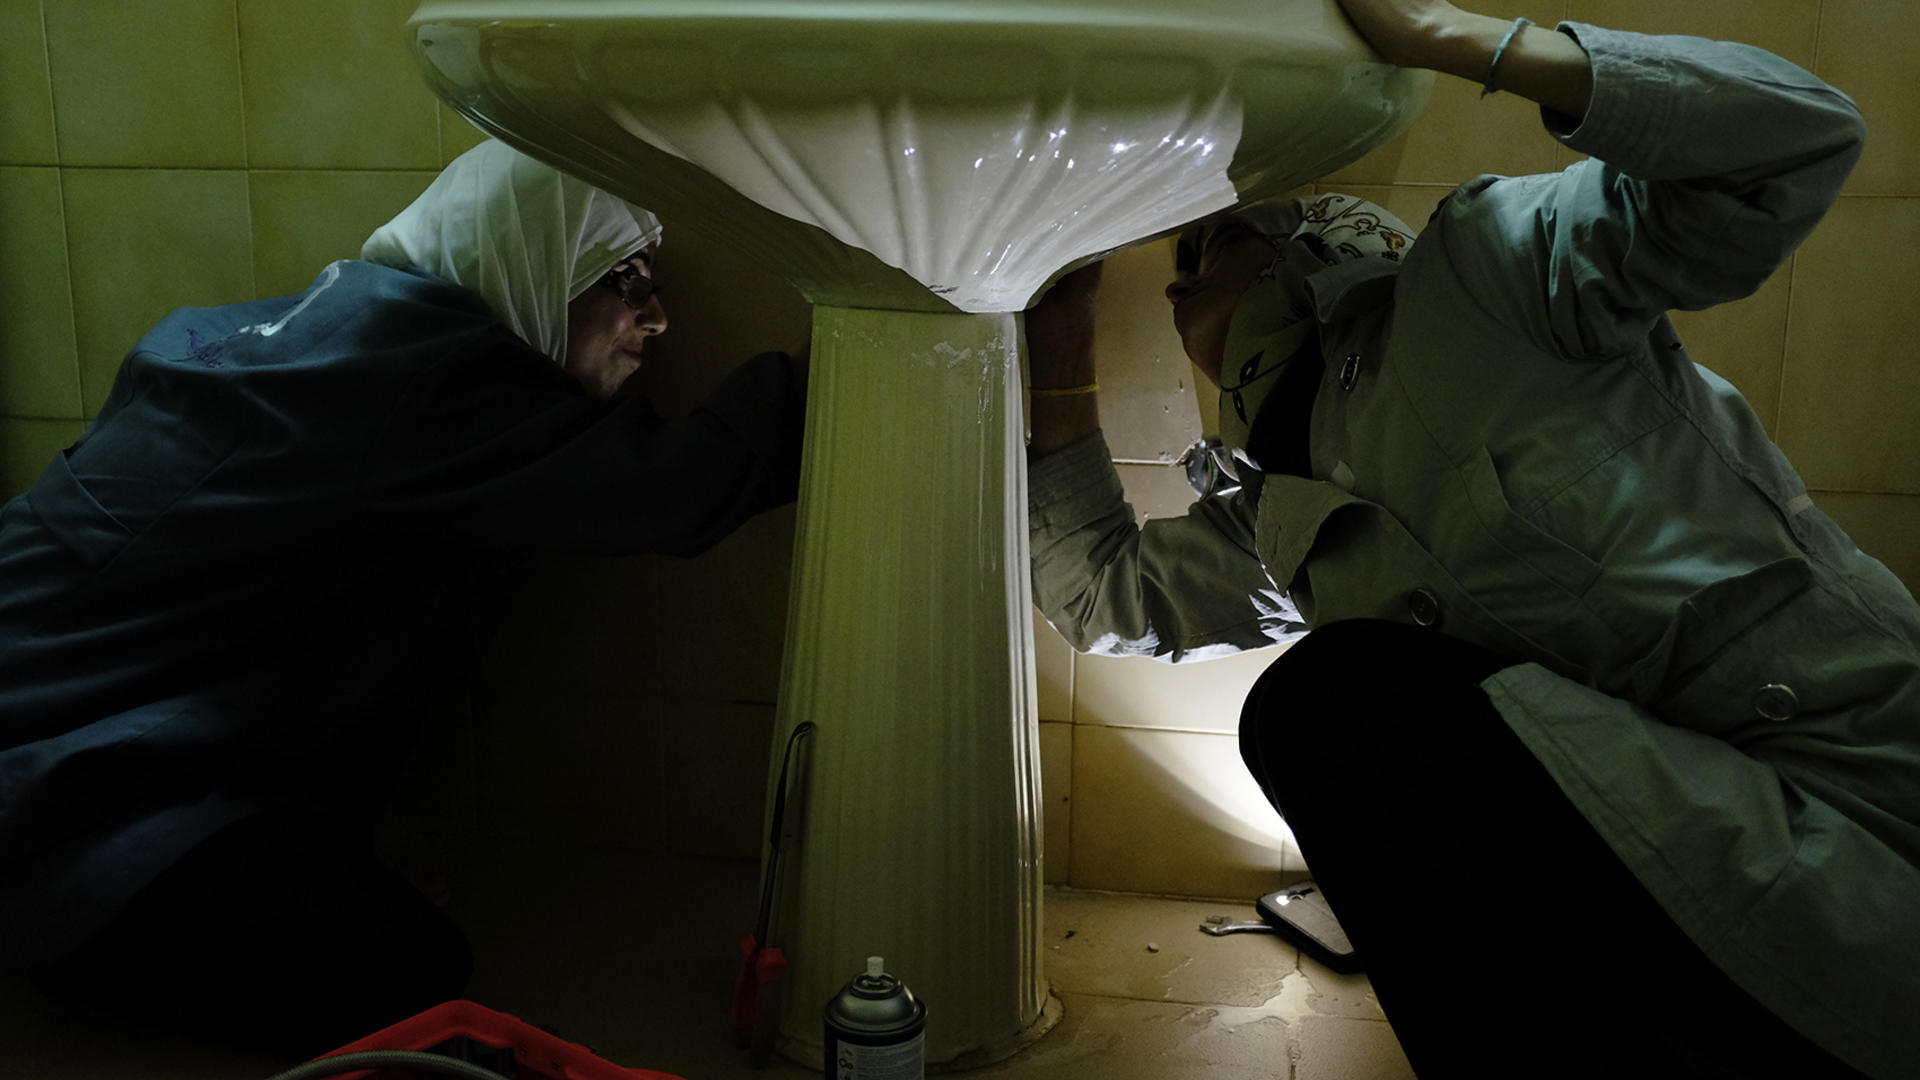 Two Syrian women plumbers in Jordan